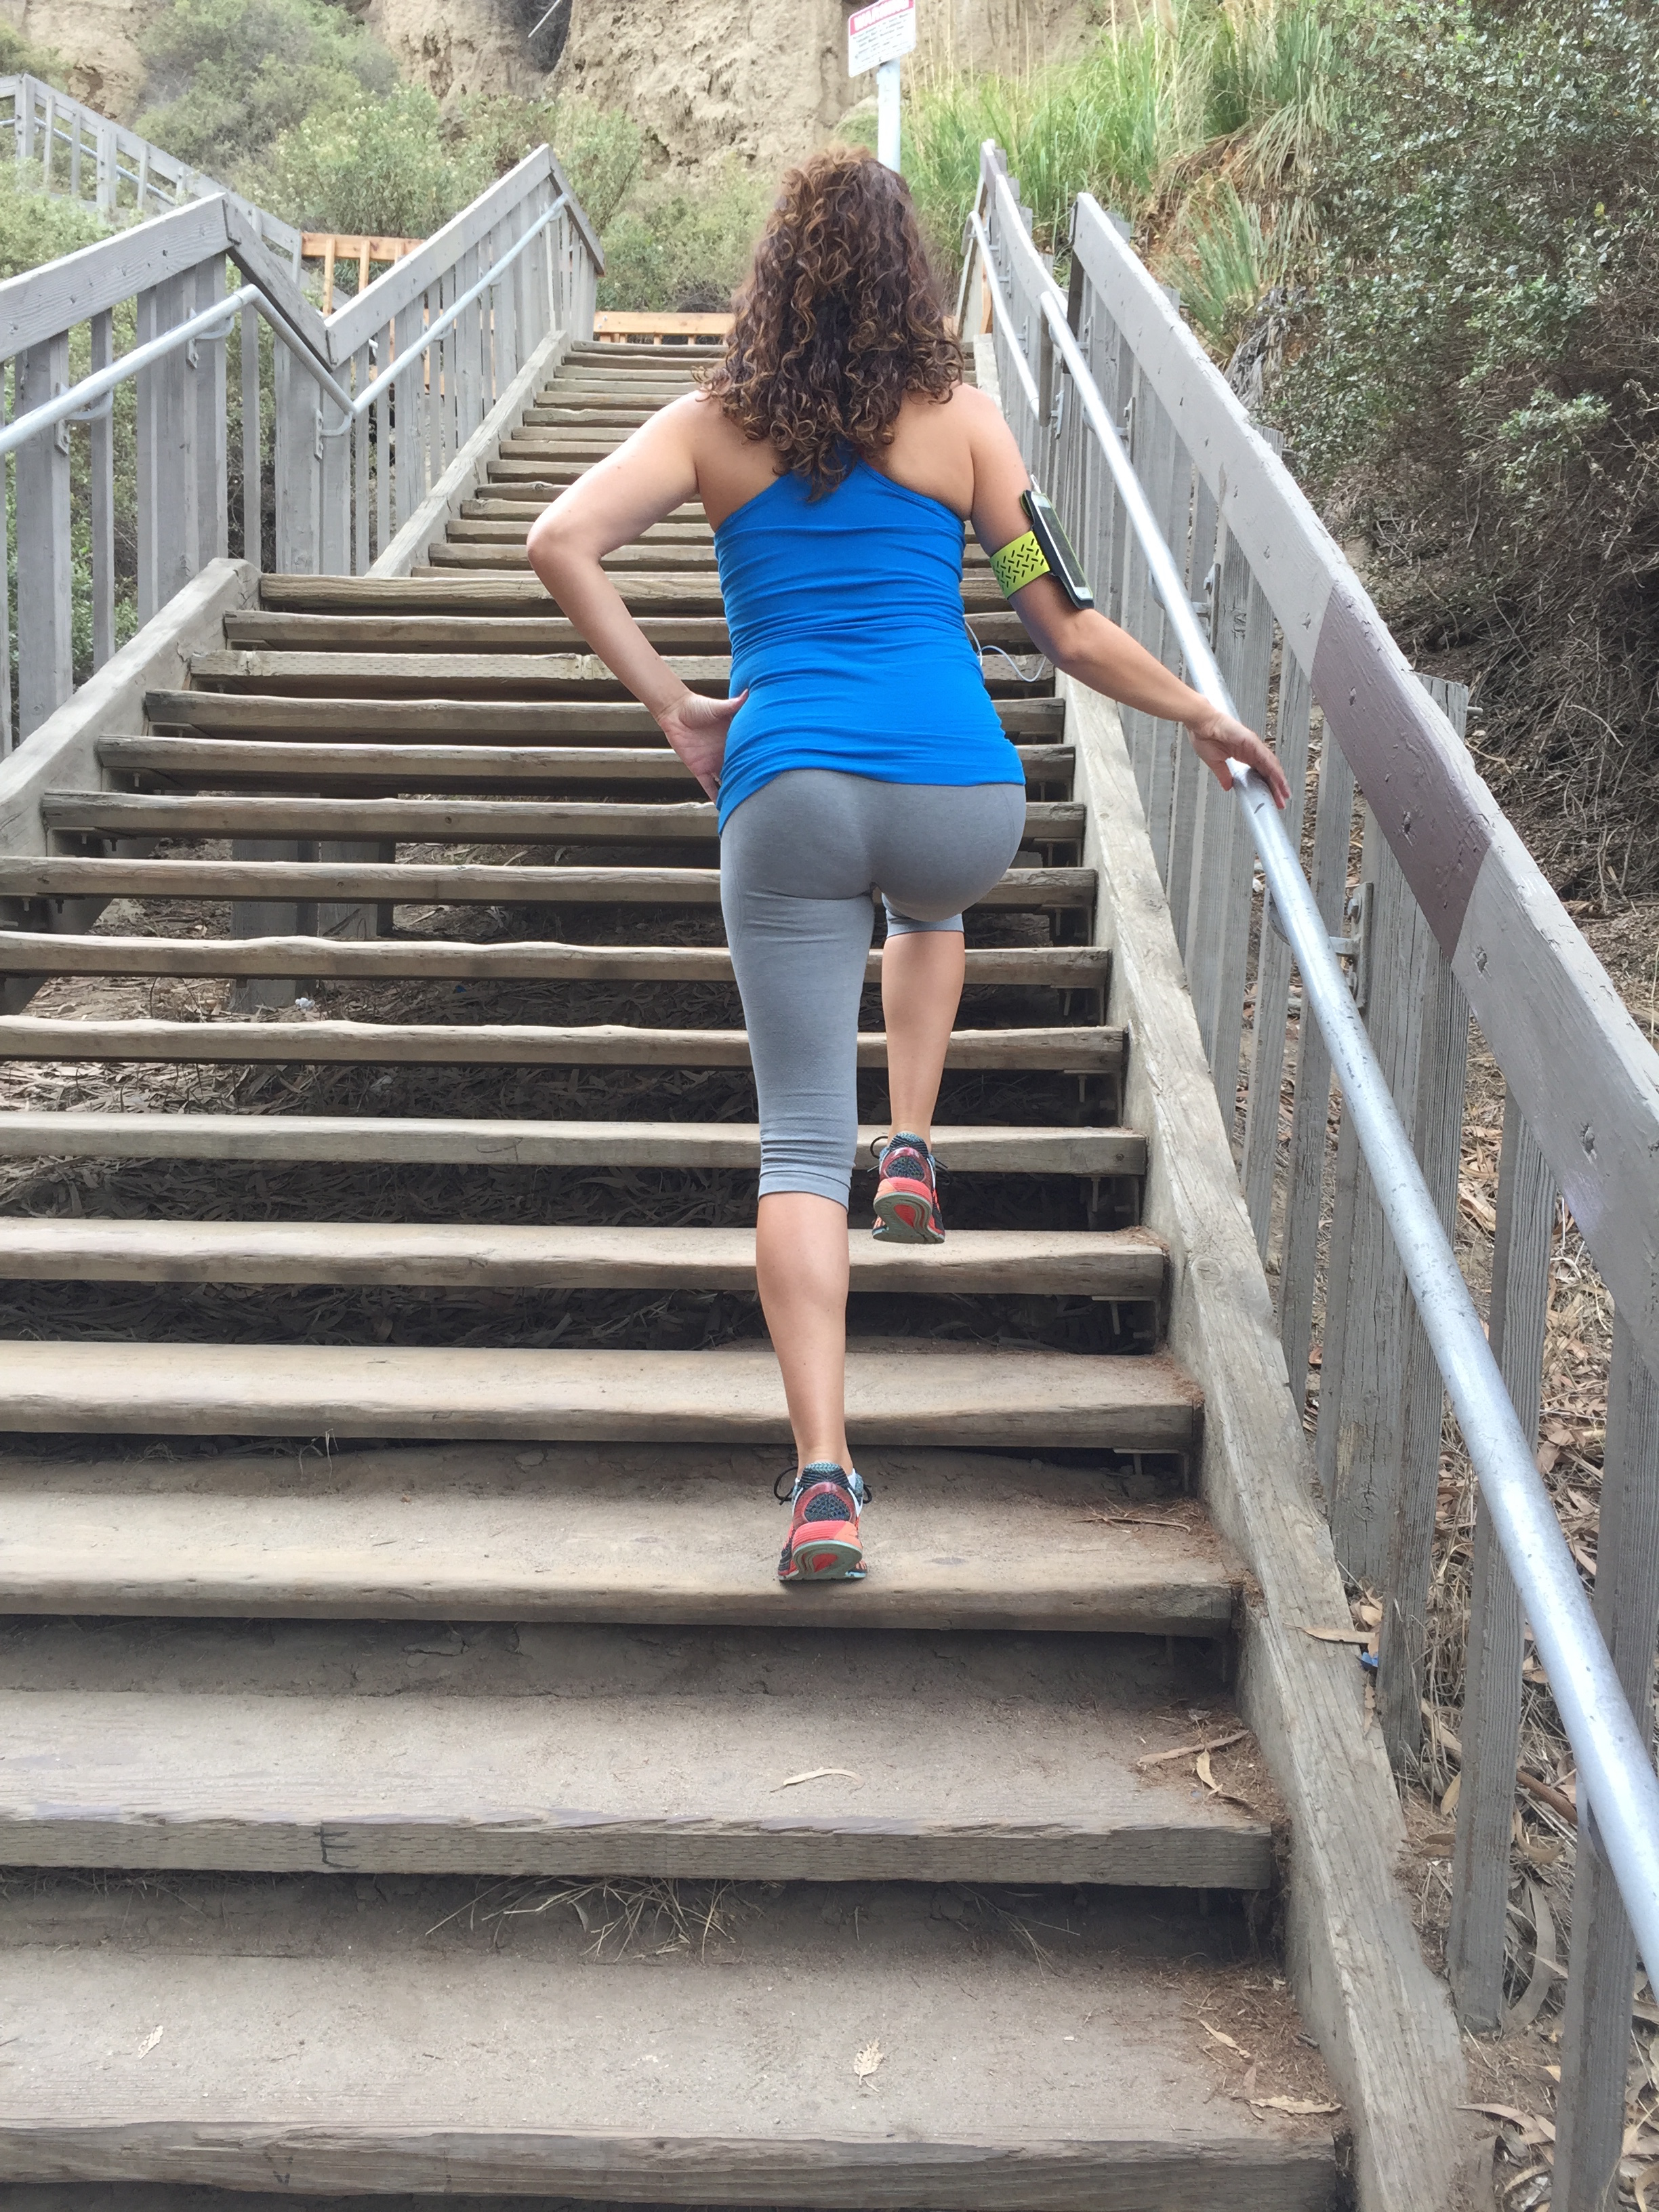 Stair Climbing, Cardio, Stepper, Stair Workout